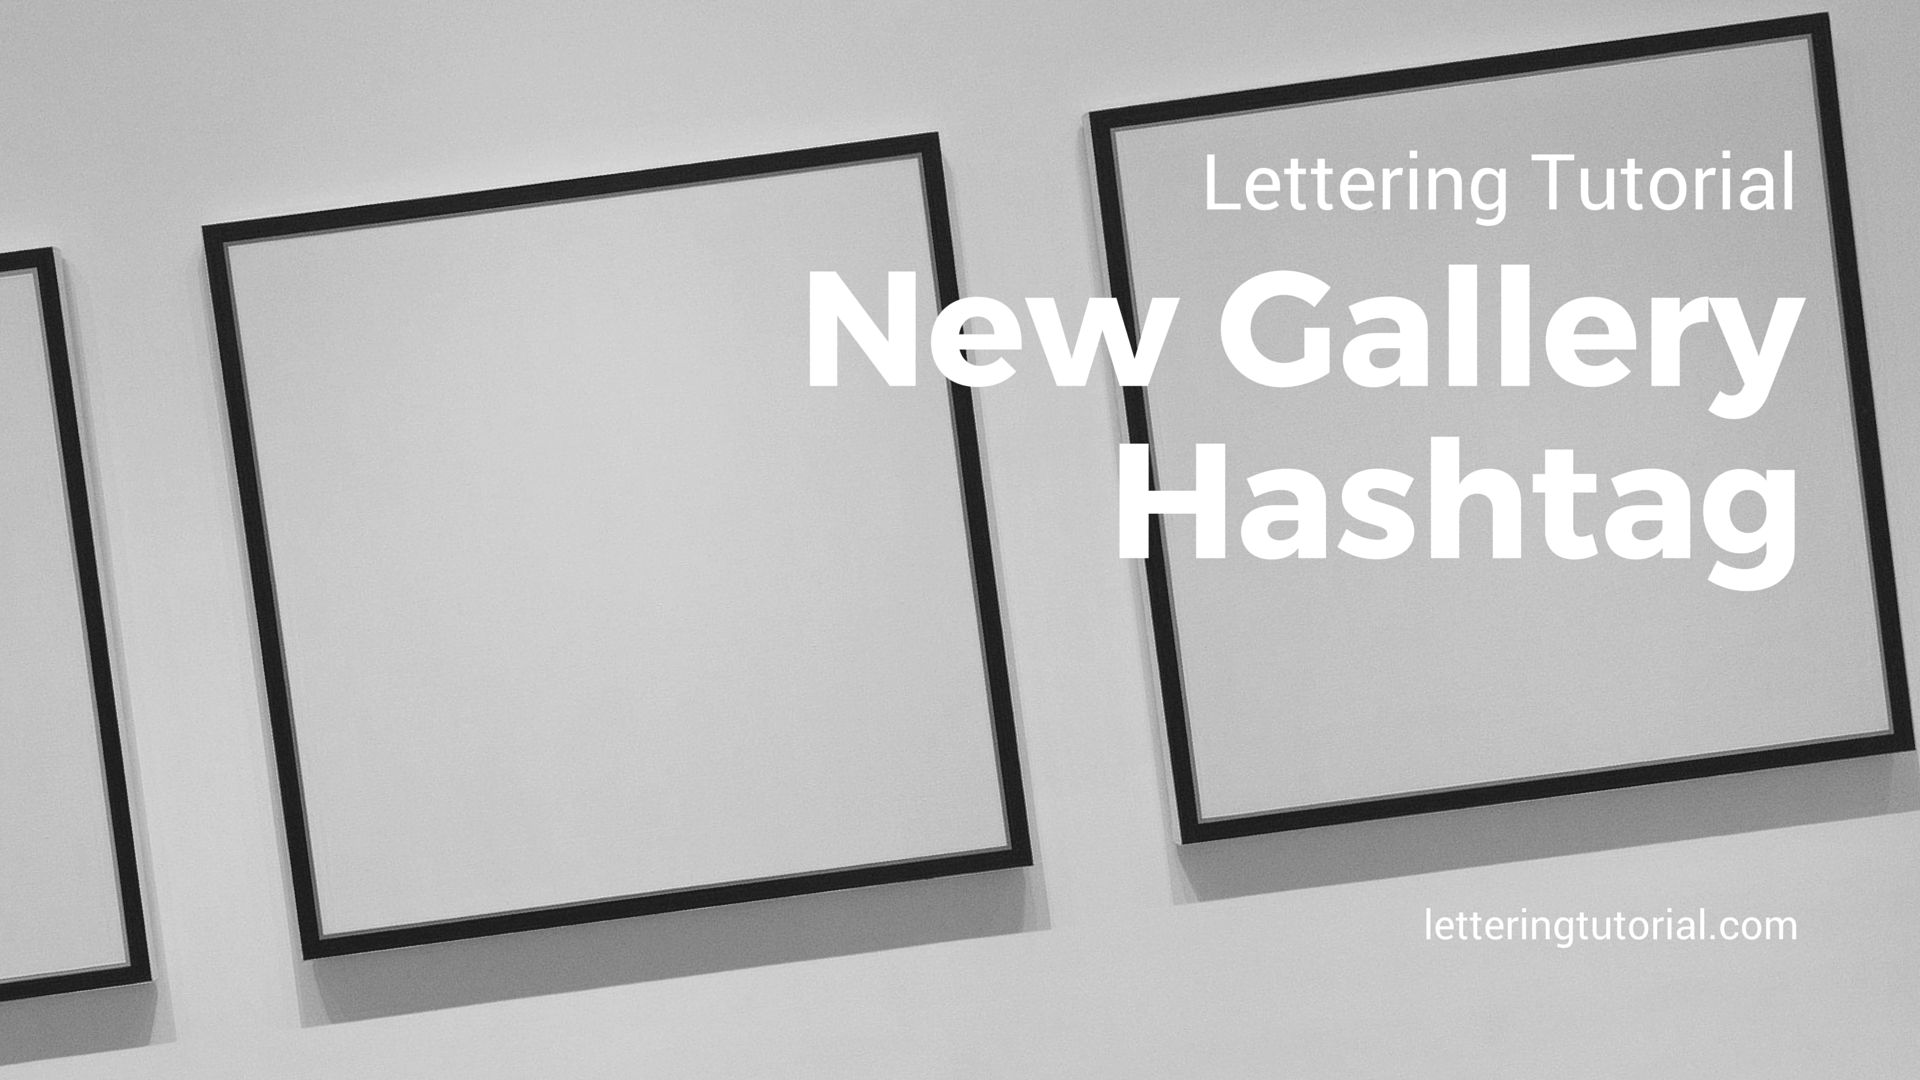 Lettering Tutorial New Gallery Hashtag